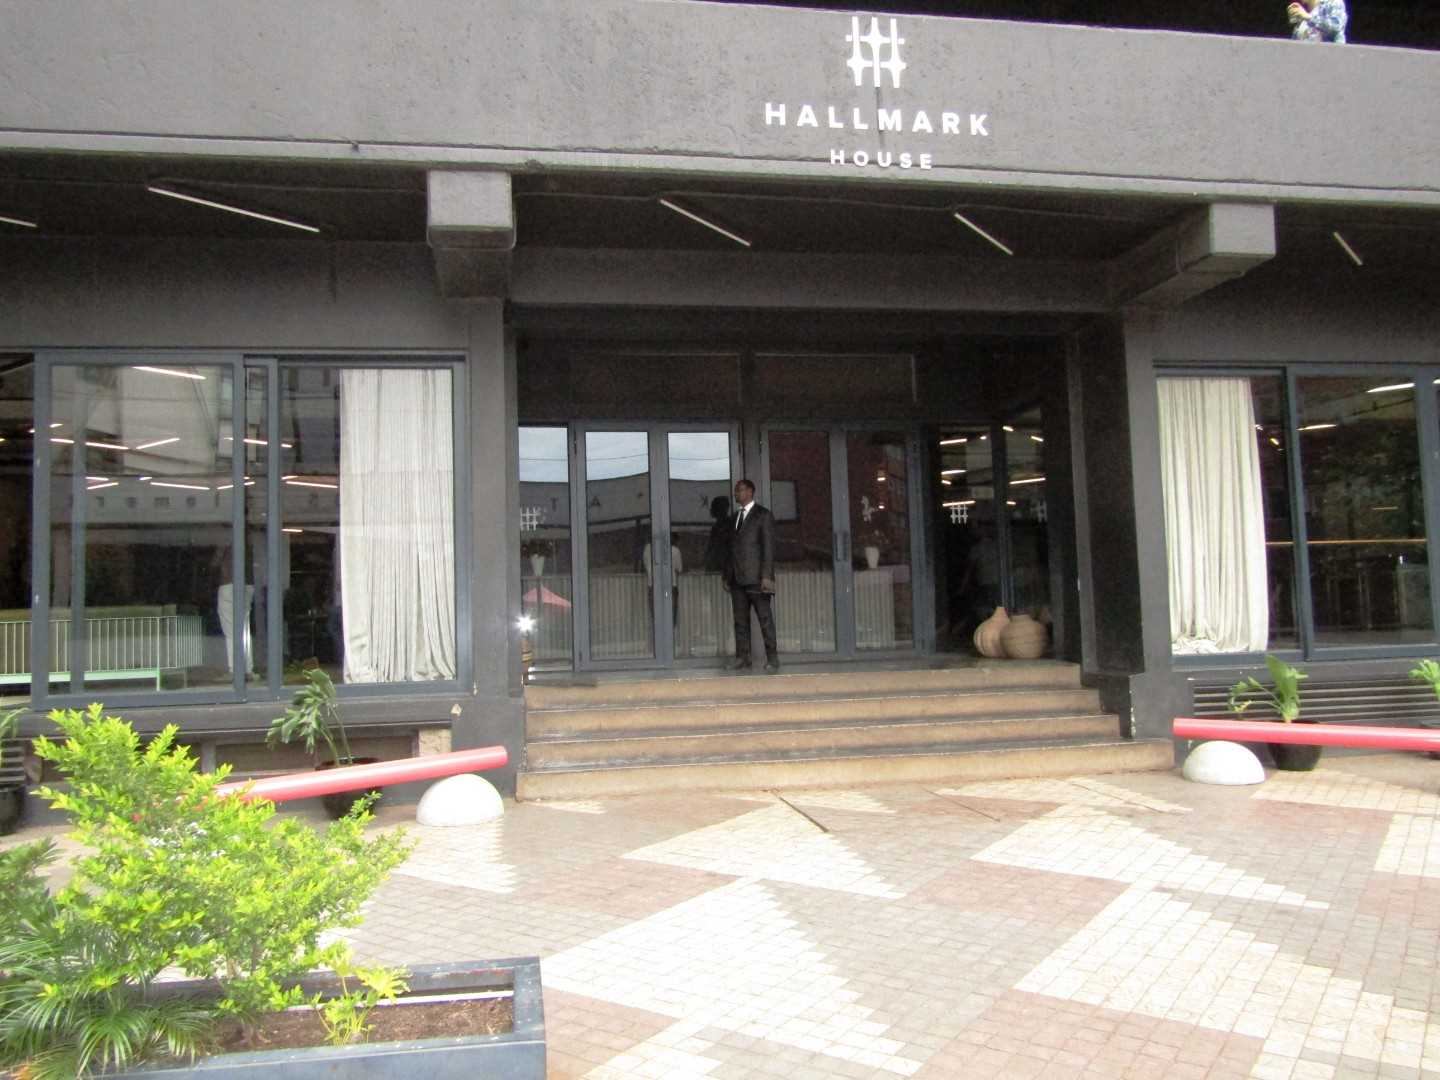 Studio Apartment in Hallmark Hotel - Maboneng